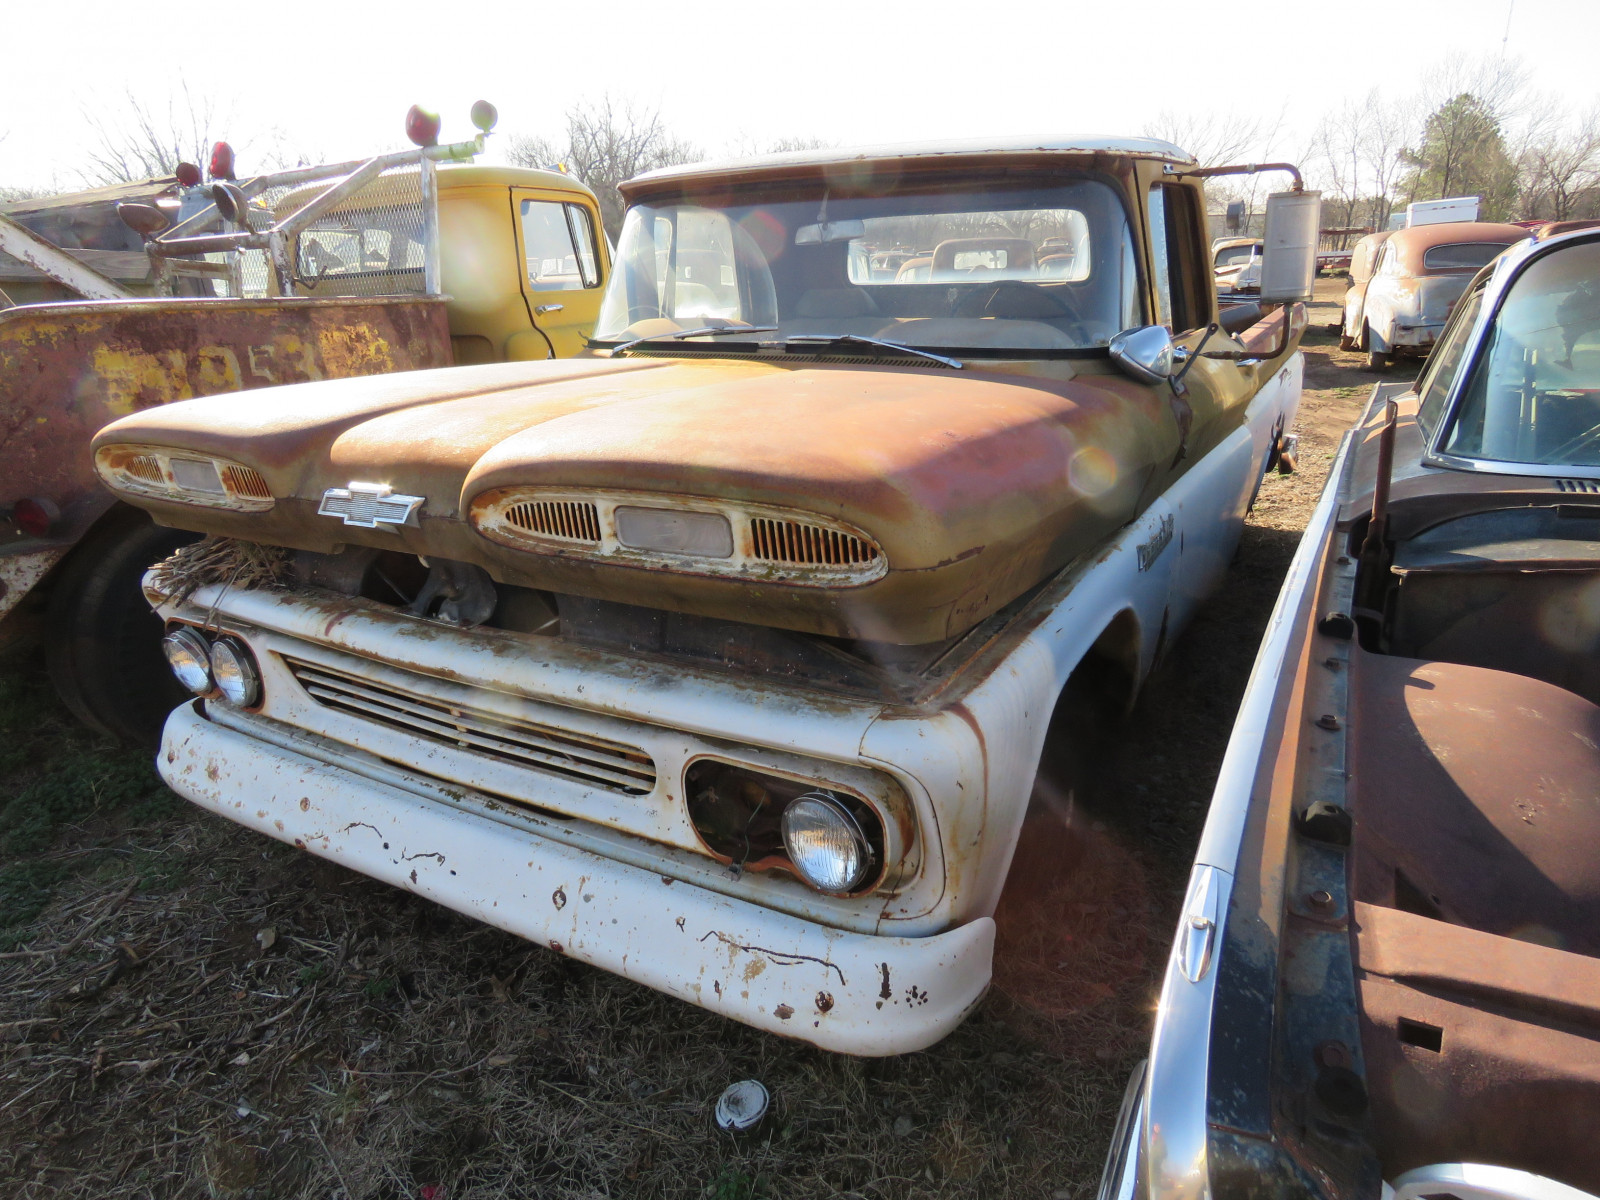 1960 Chevrolet Apache Series 10 Pickup - Image 2